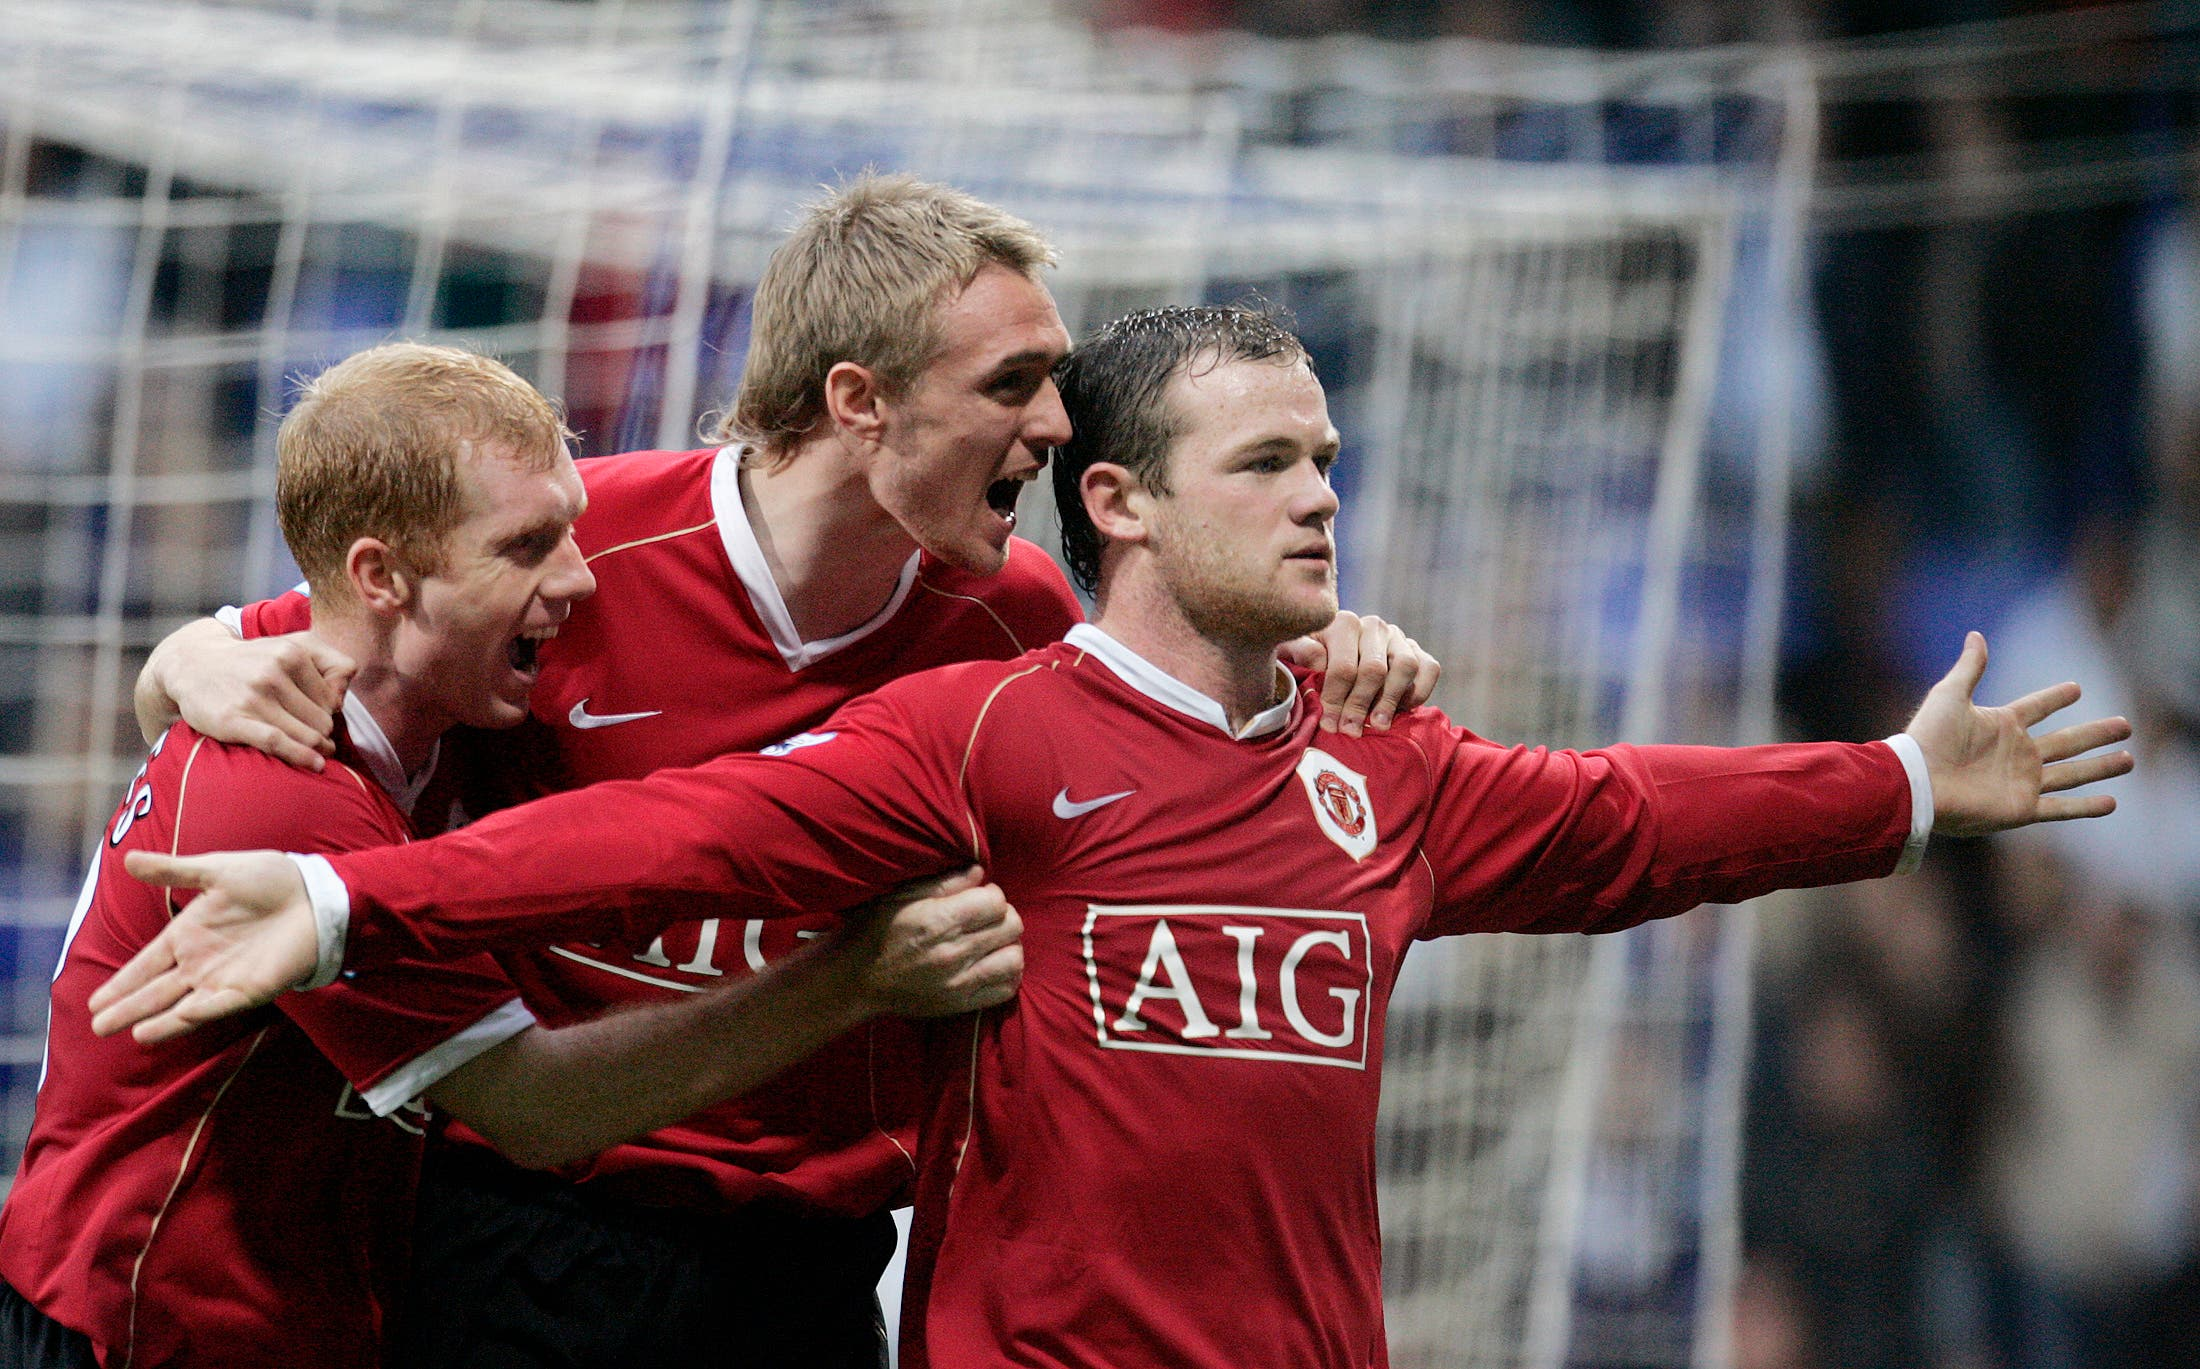 Manchester United's Wayne Rooney (R) celebrates with team mates Darren Fletcher (C) and Paul Scholes (L) after scoring his third goal during their English Premier League soccer match against Bolton Wanderers in Bolton, northern England October 28, 2006. (Reuters)